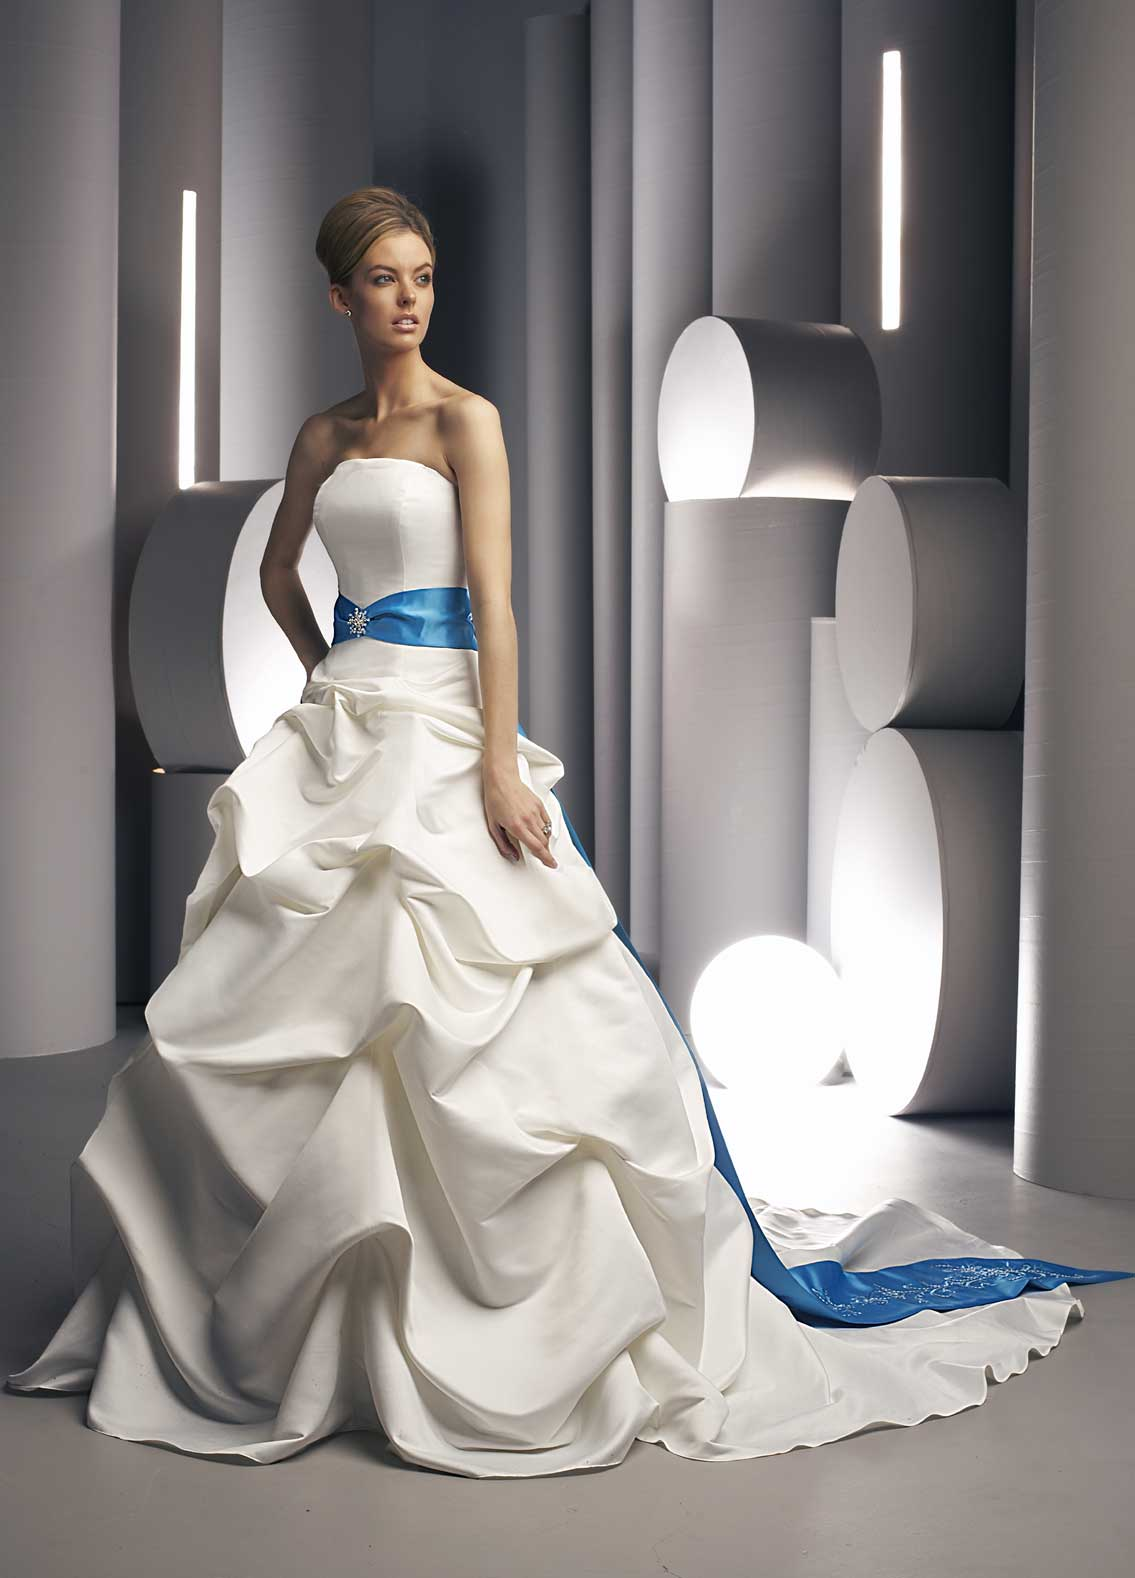 White wedding gown with blue sash for Blue sash for wedding dress